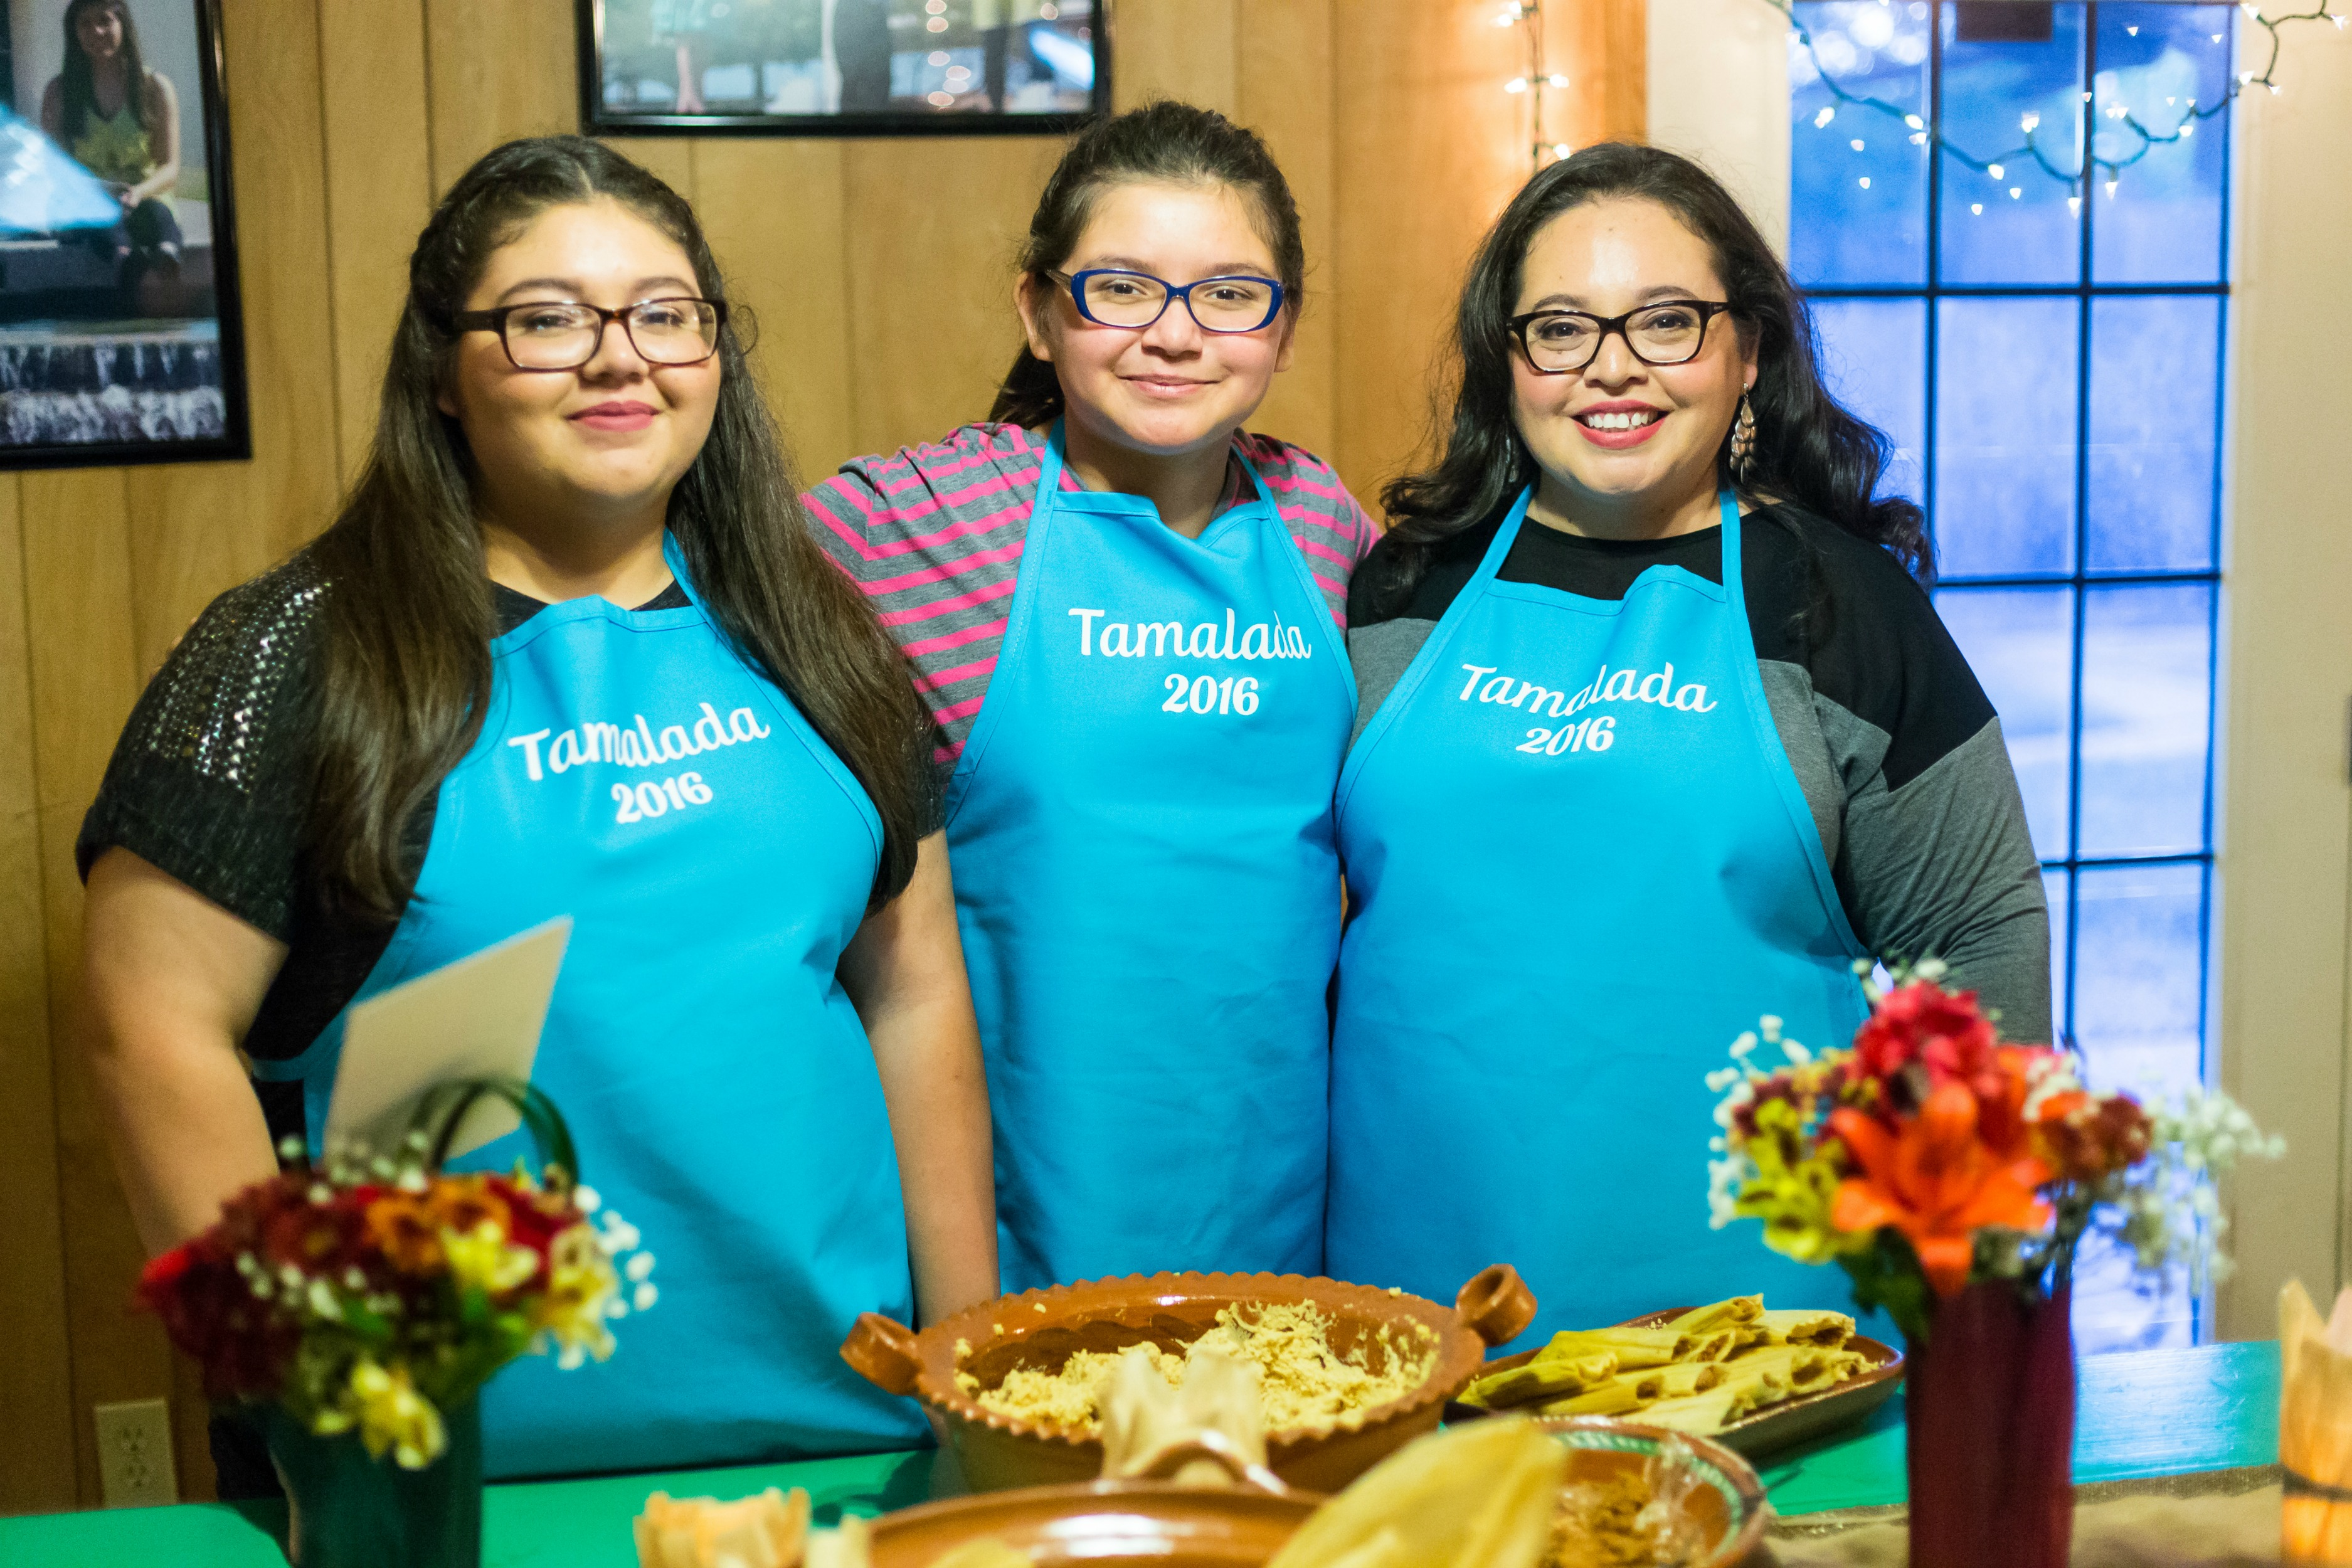 how-to-host-a-tamalada-familia-traditions-vianneyrodriguez-sweetlifebake